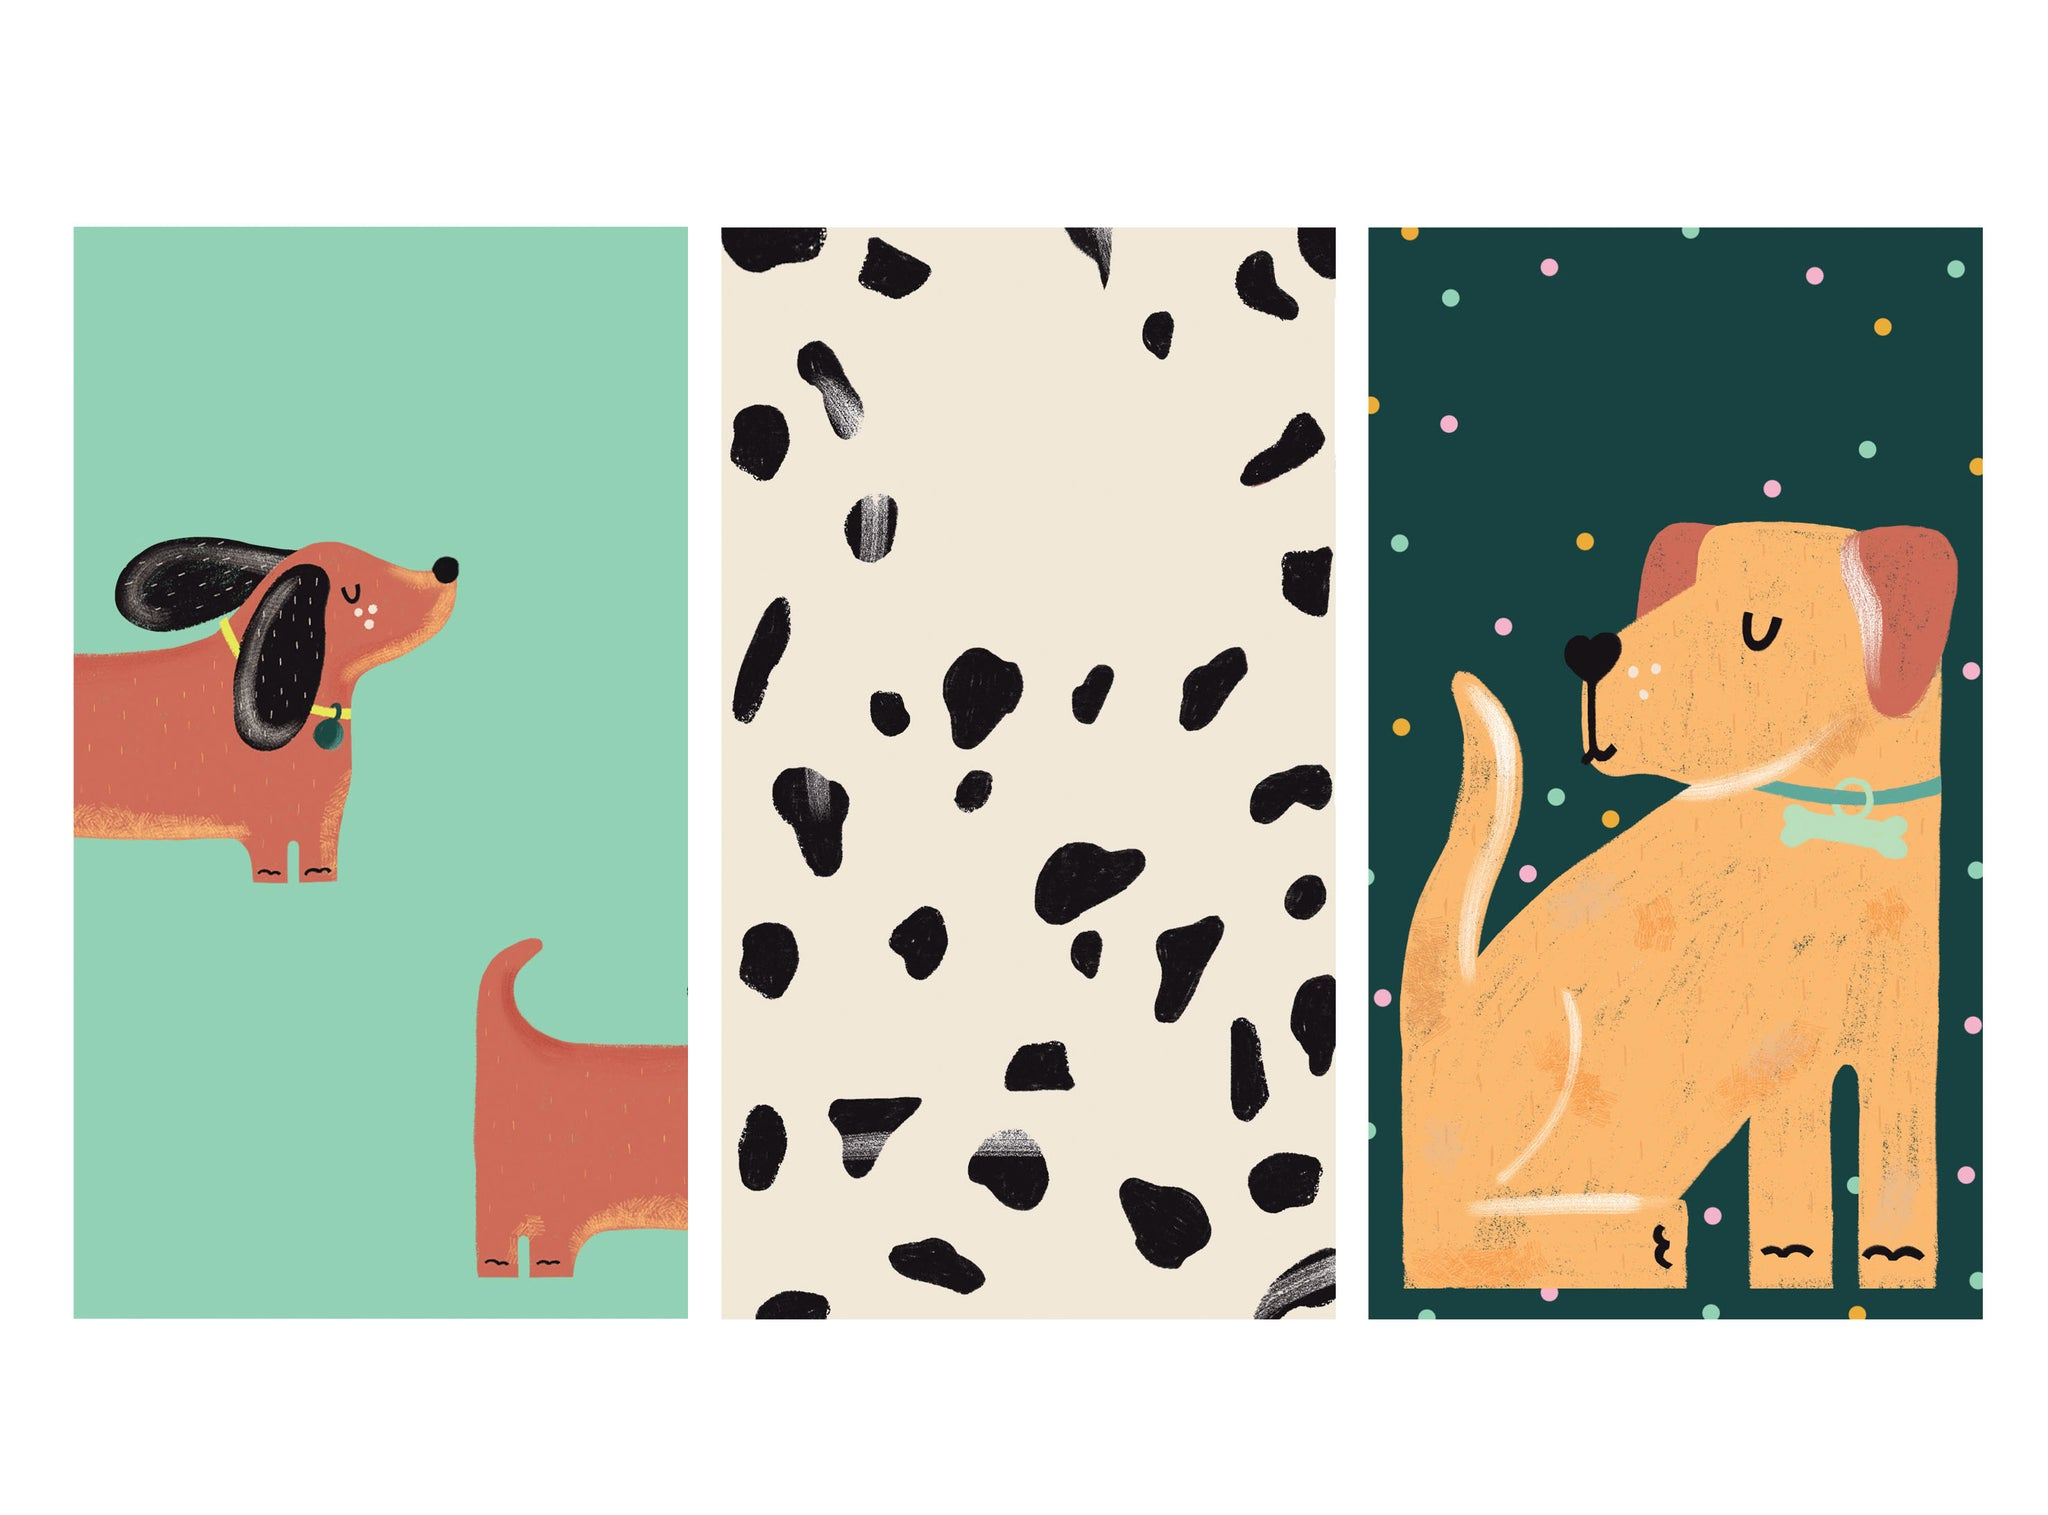 Colourful and cute illustrated dog wallpapers for phone | Raspberry Blossom